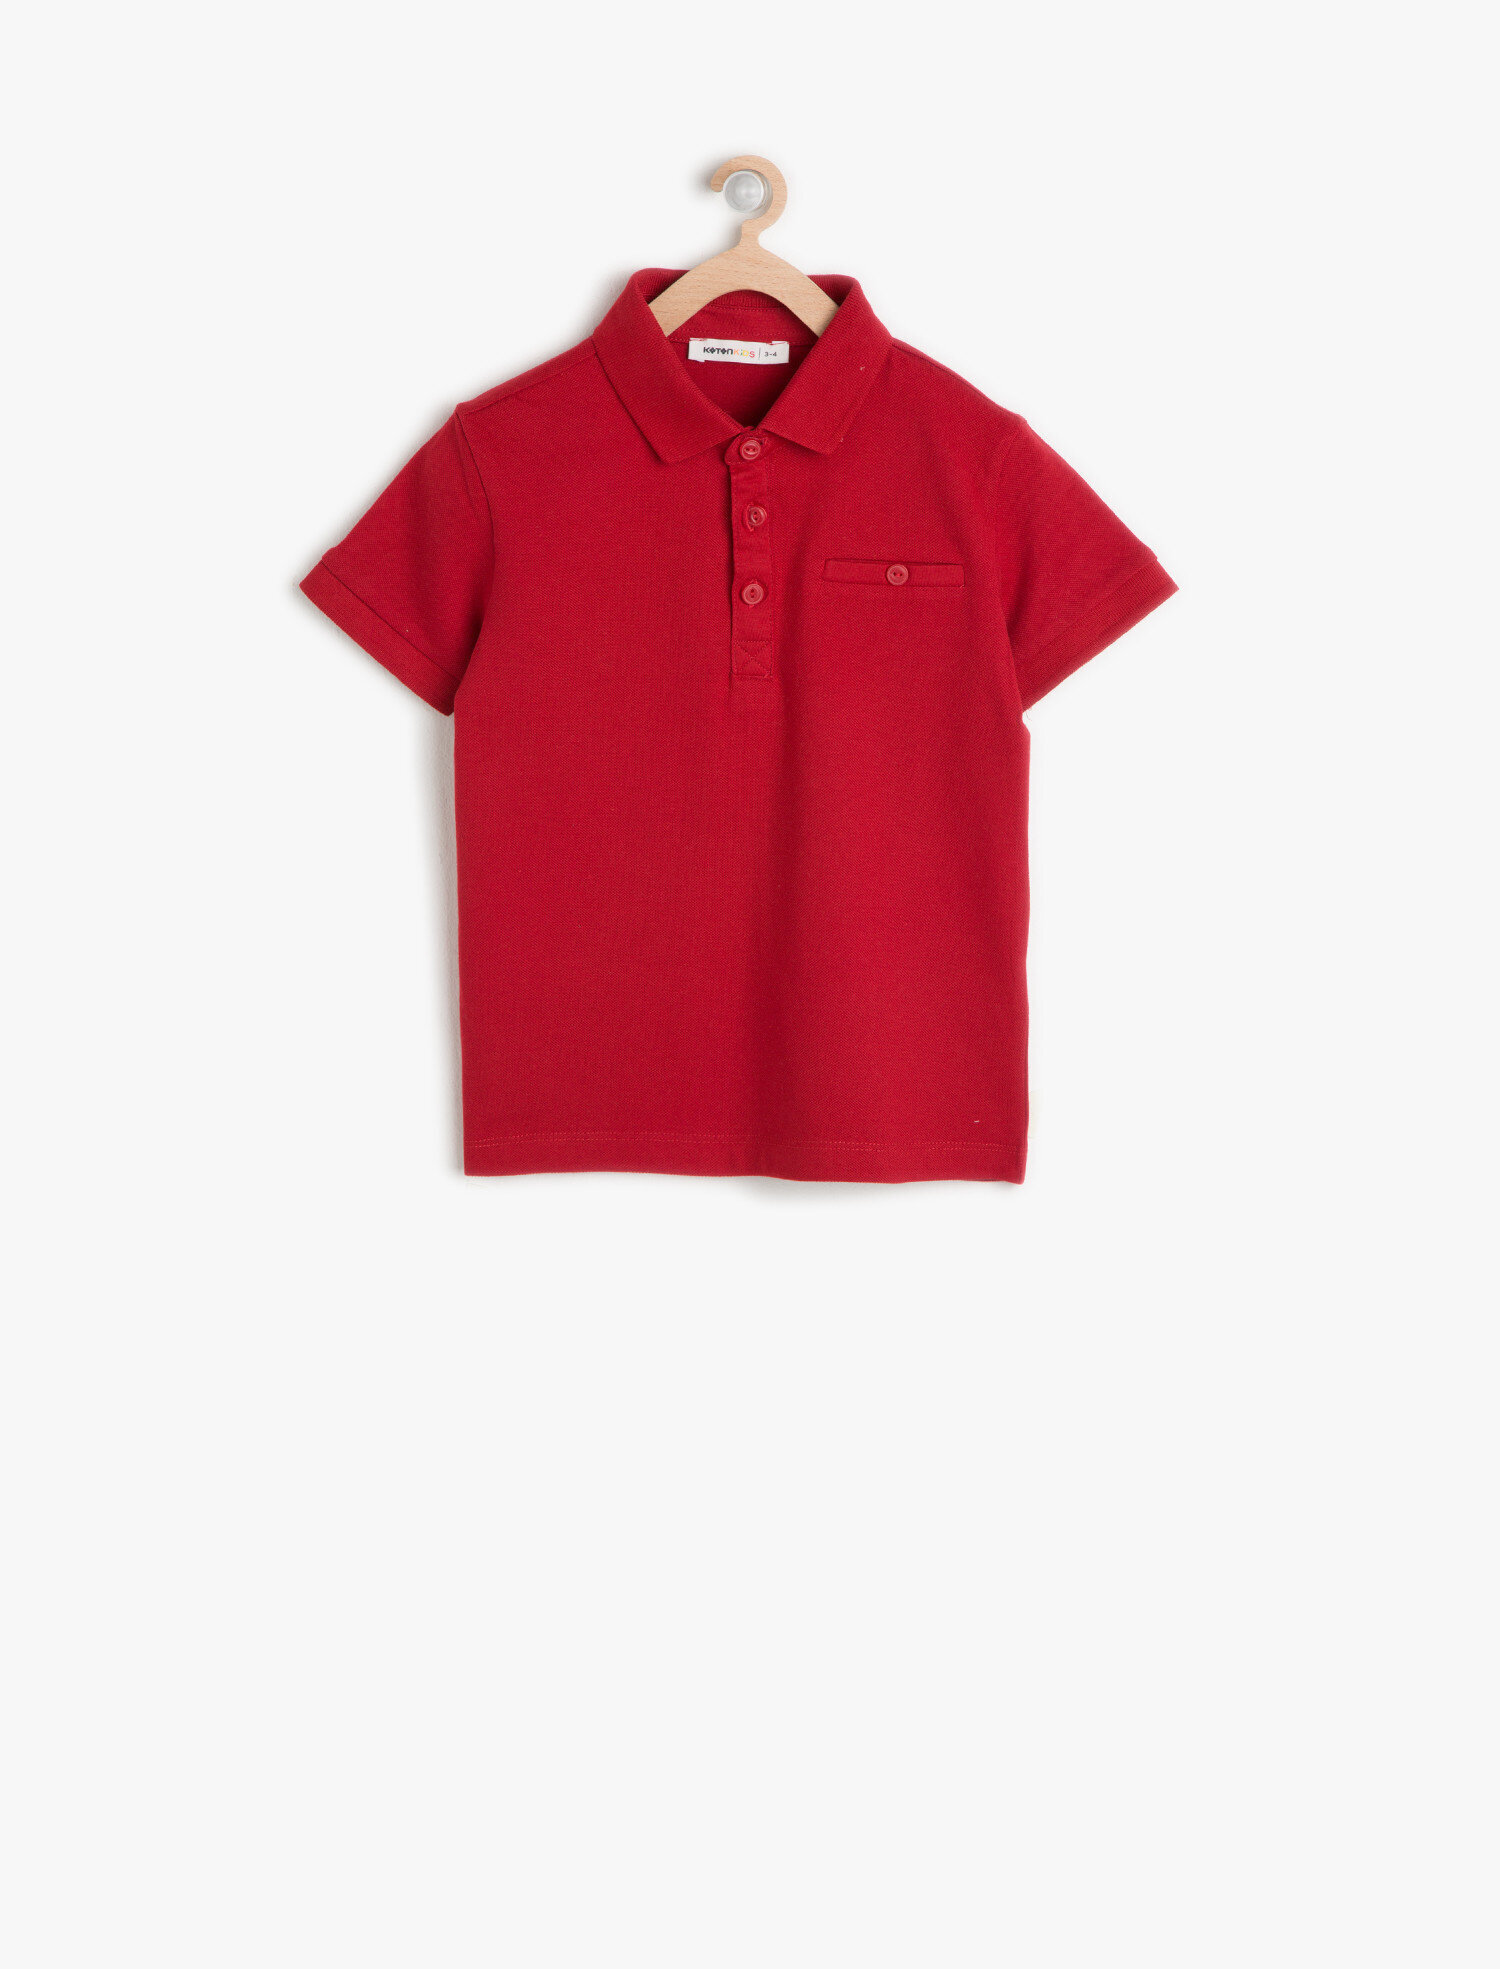 afaf24647 Plain Red T Shirt Baby - DREAMWORKS